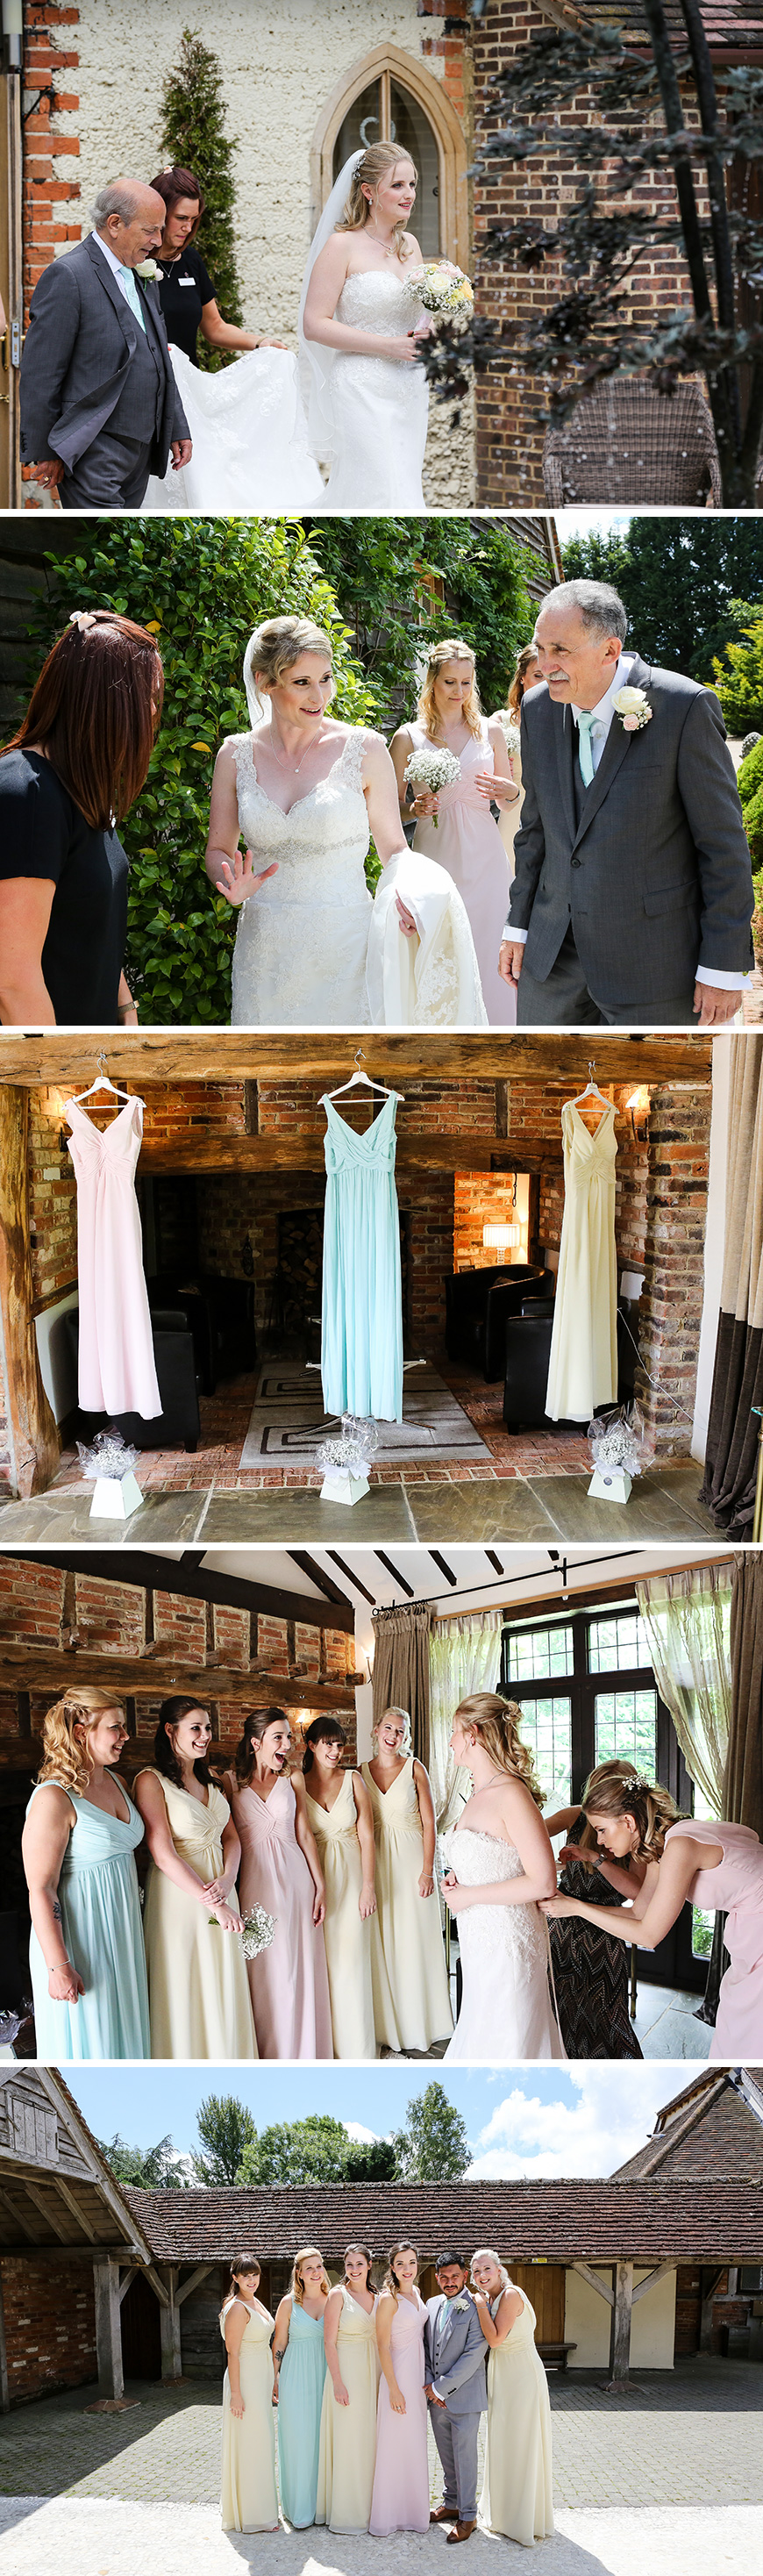 Real Wedding - Joanna and Katy's Elegant Summer Wedding At Rivervale Barn | CHWV